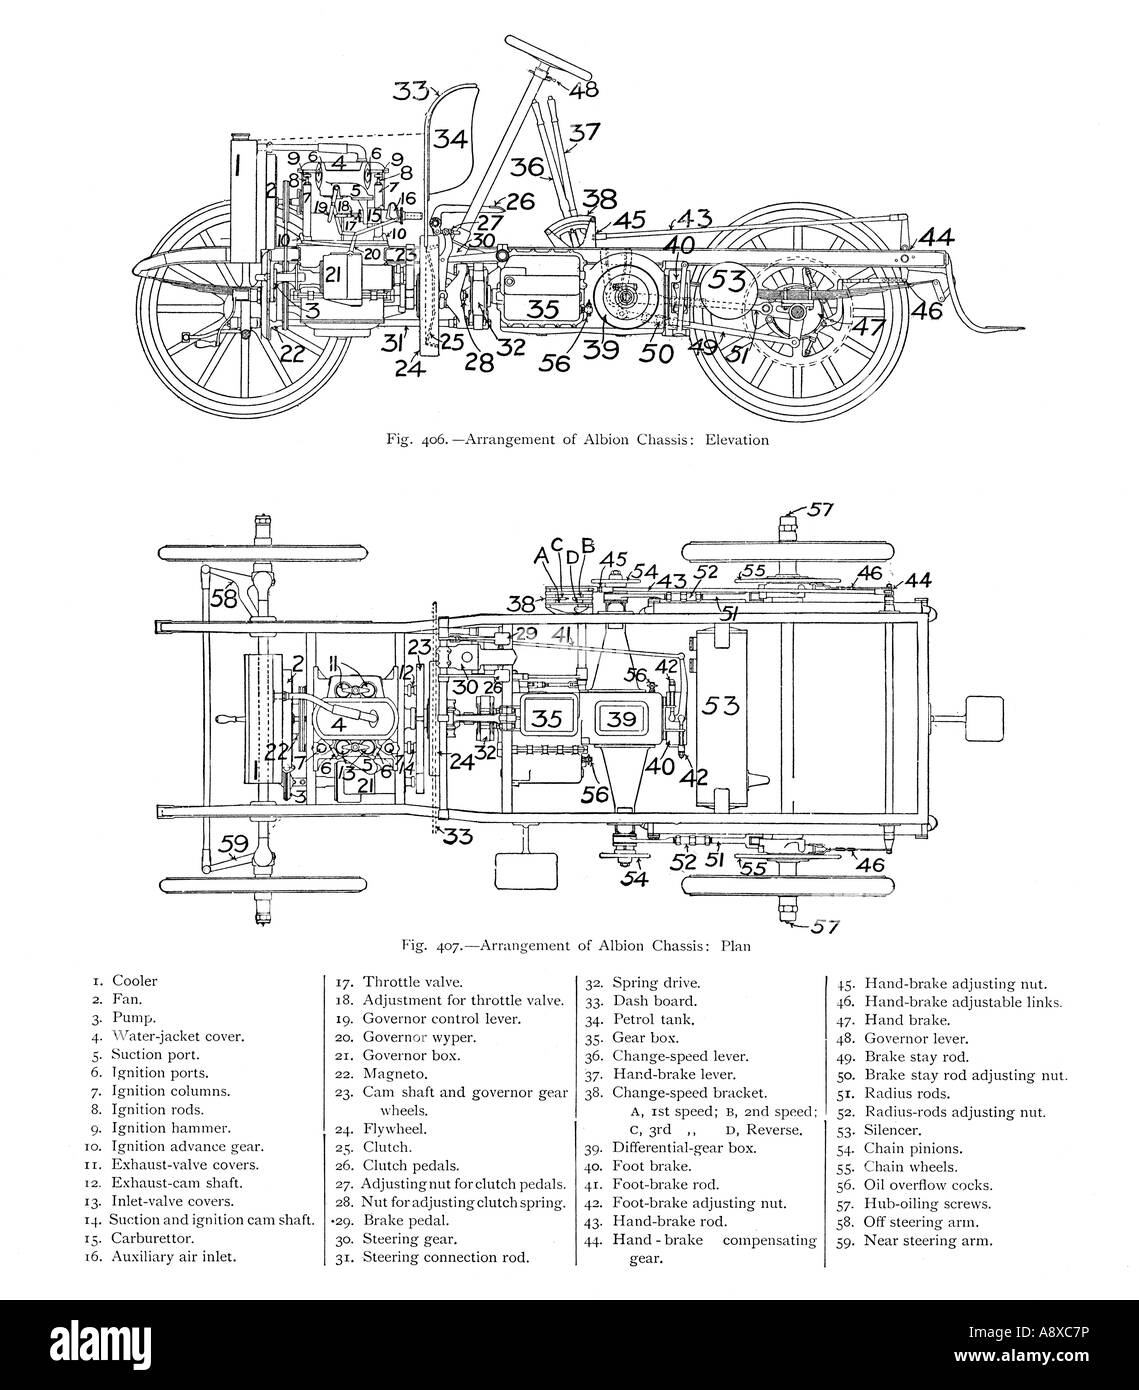 hight resolution of diagram of albion 6 horse power petrol engine car stock image